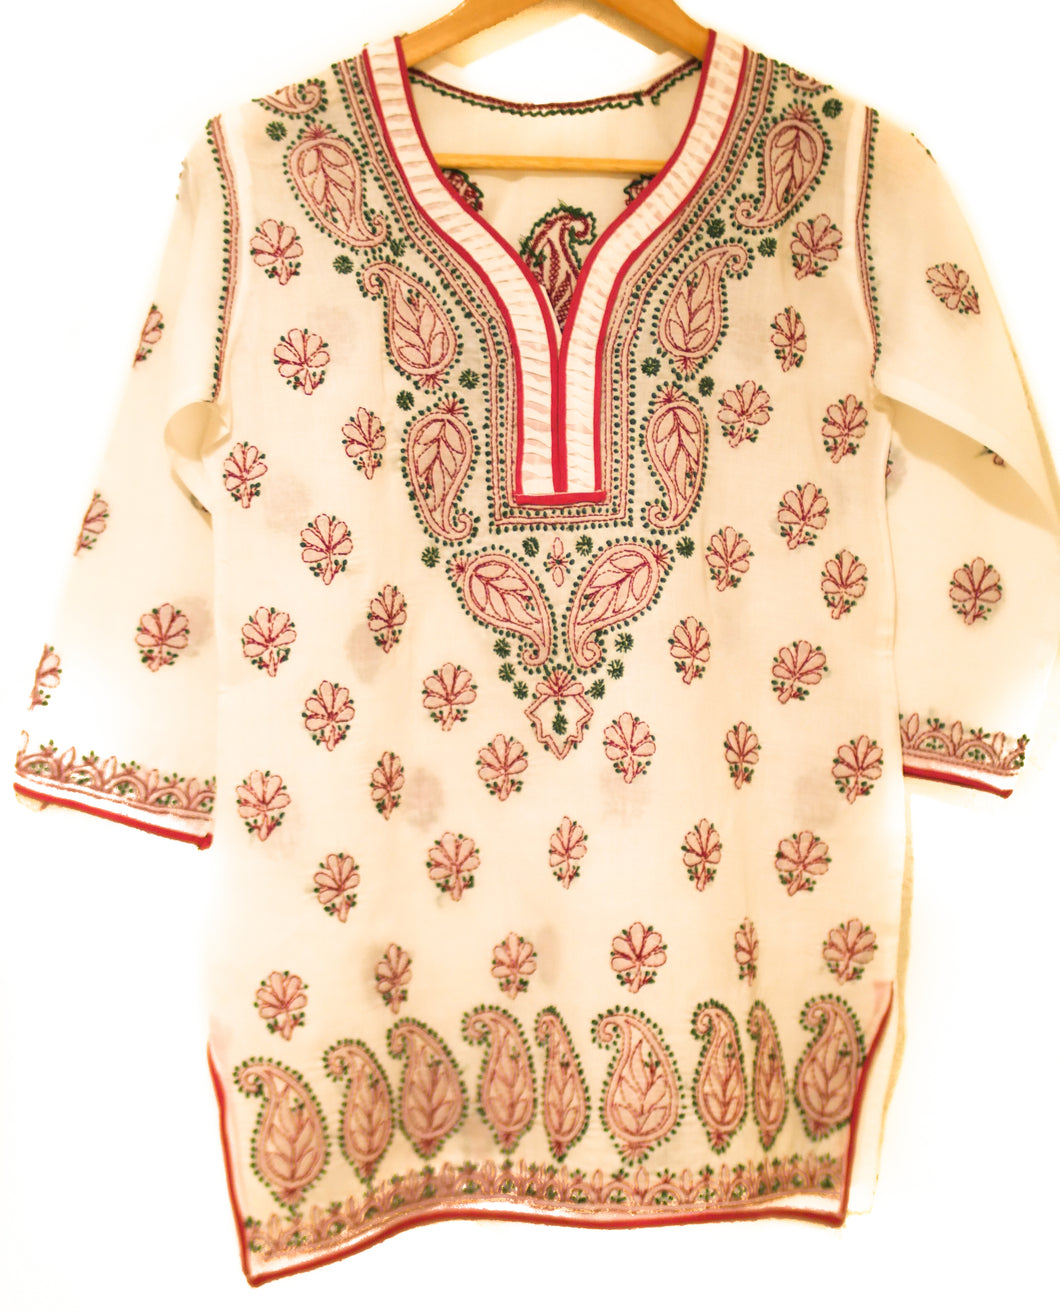 Hand Sewn Cotton Short Kurta- Size Small